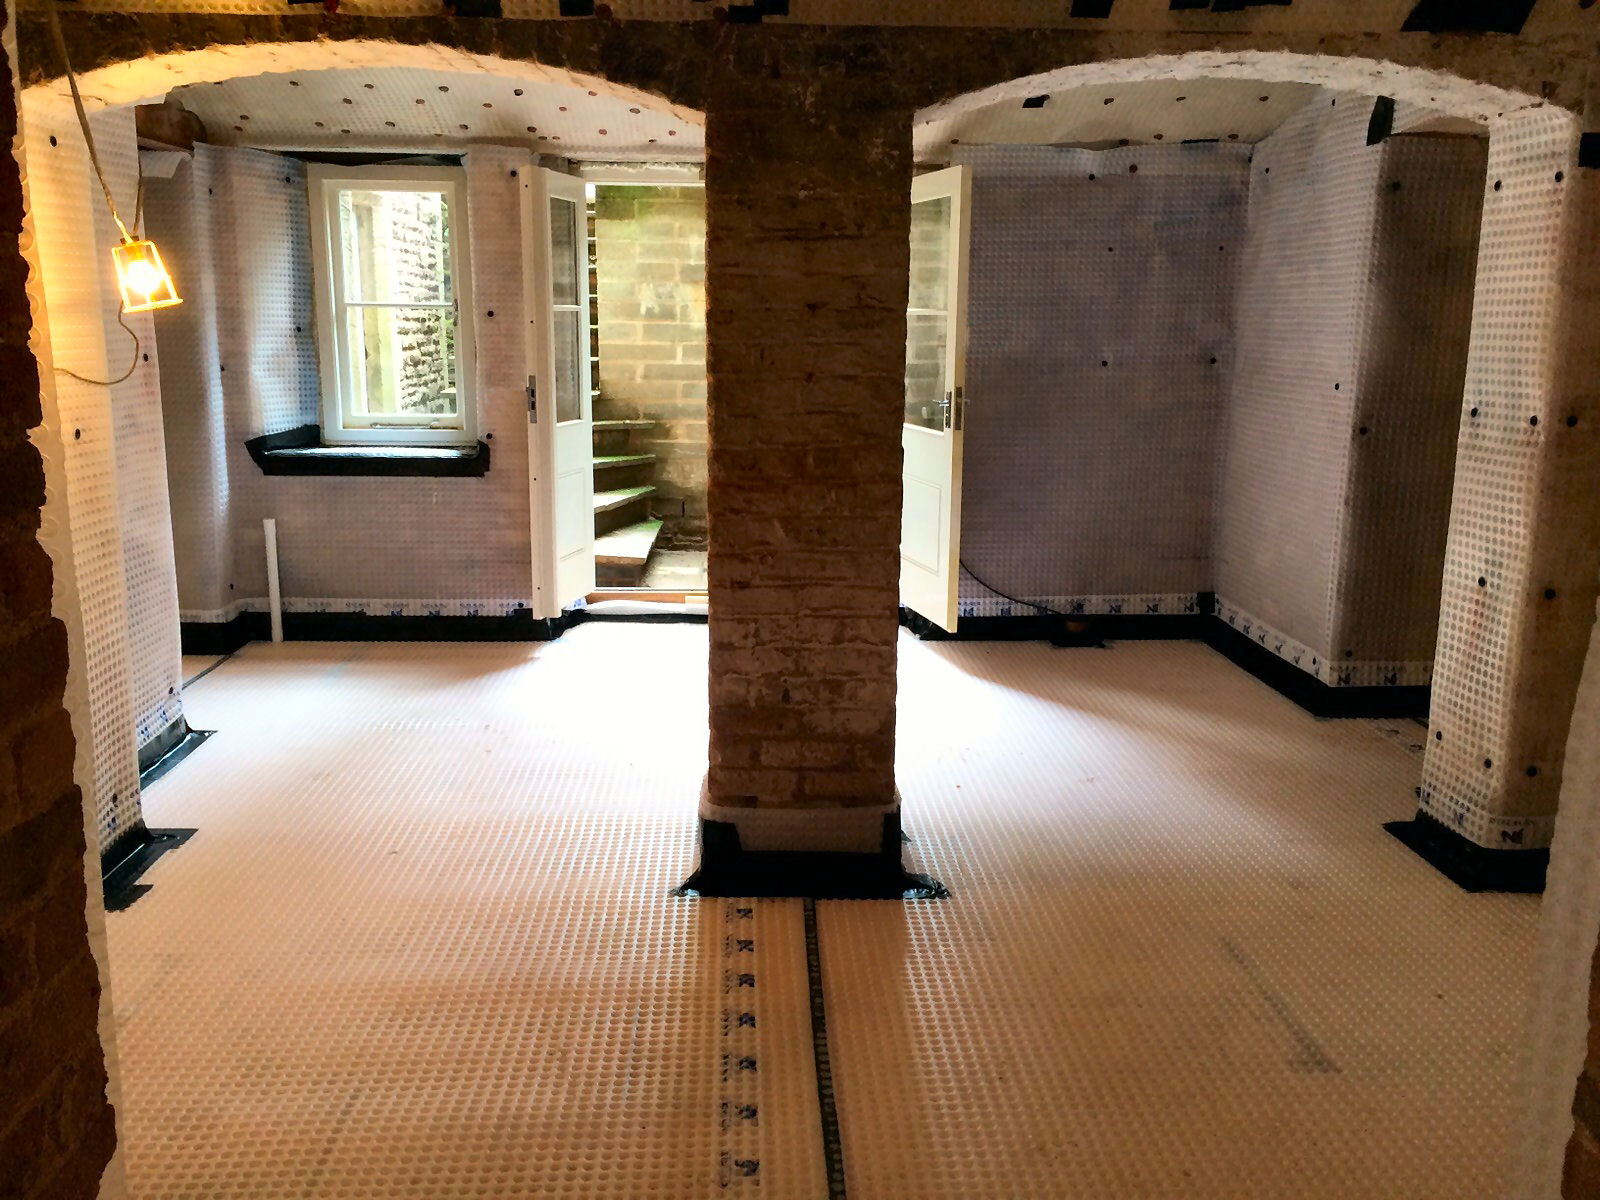 Cellar Waterproofing - Cavity Drain Membrane System Installed to Cellar Conversion